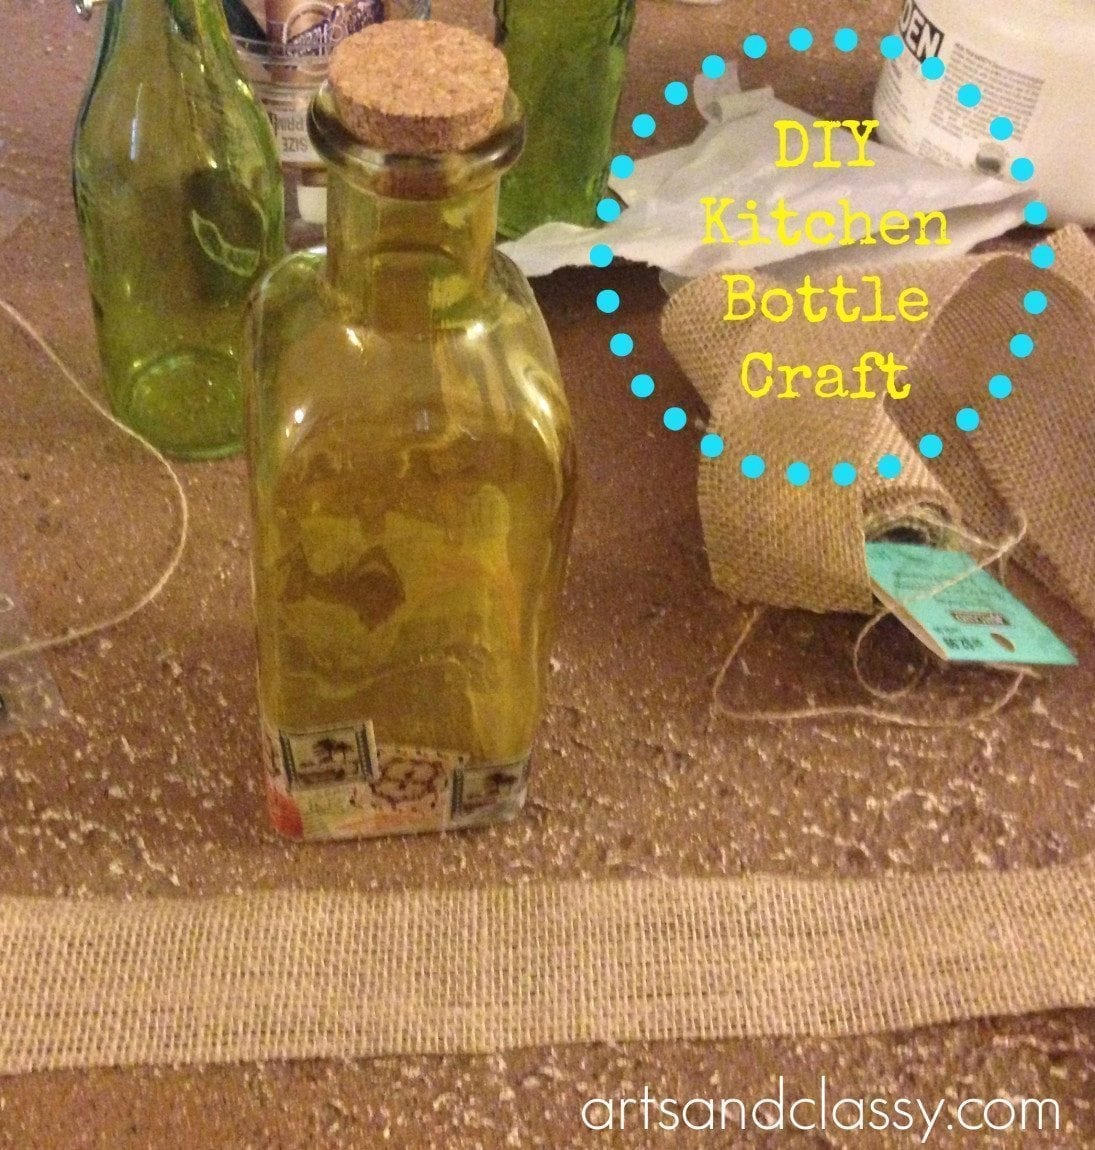 Michaels_Pinterest_Hometalk_Party_Arts_and_Classy_Blog_Crafting_06